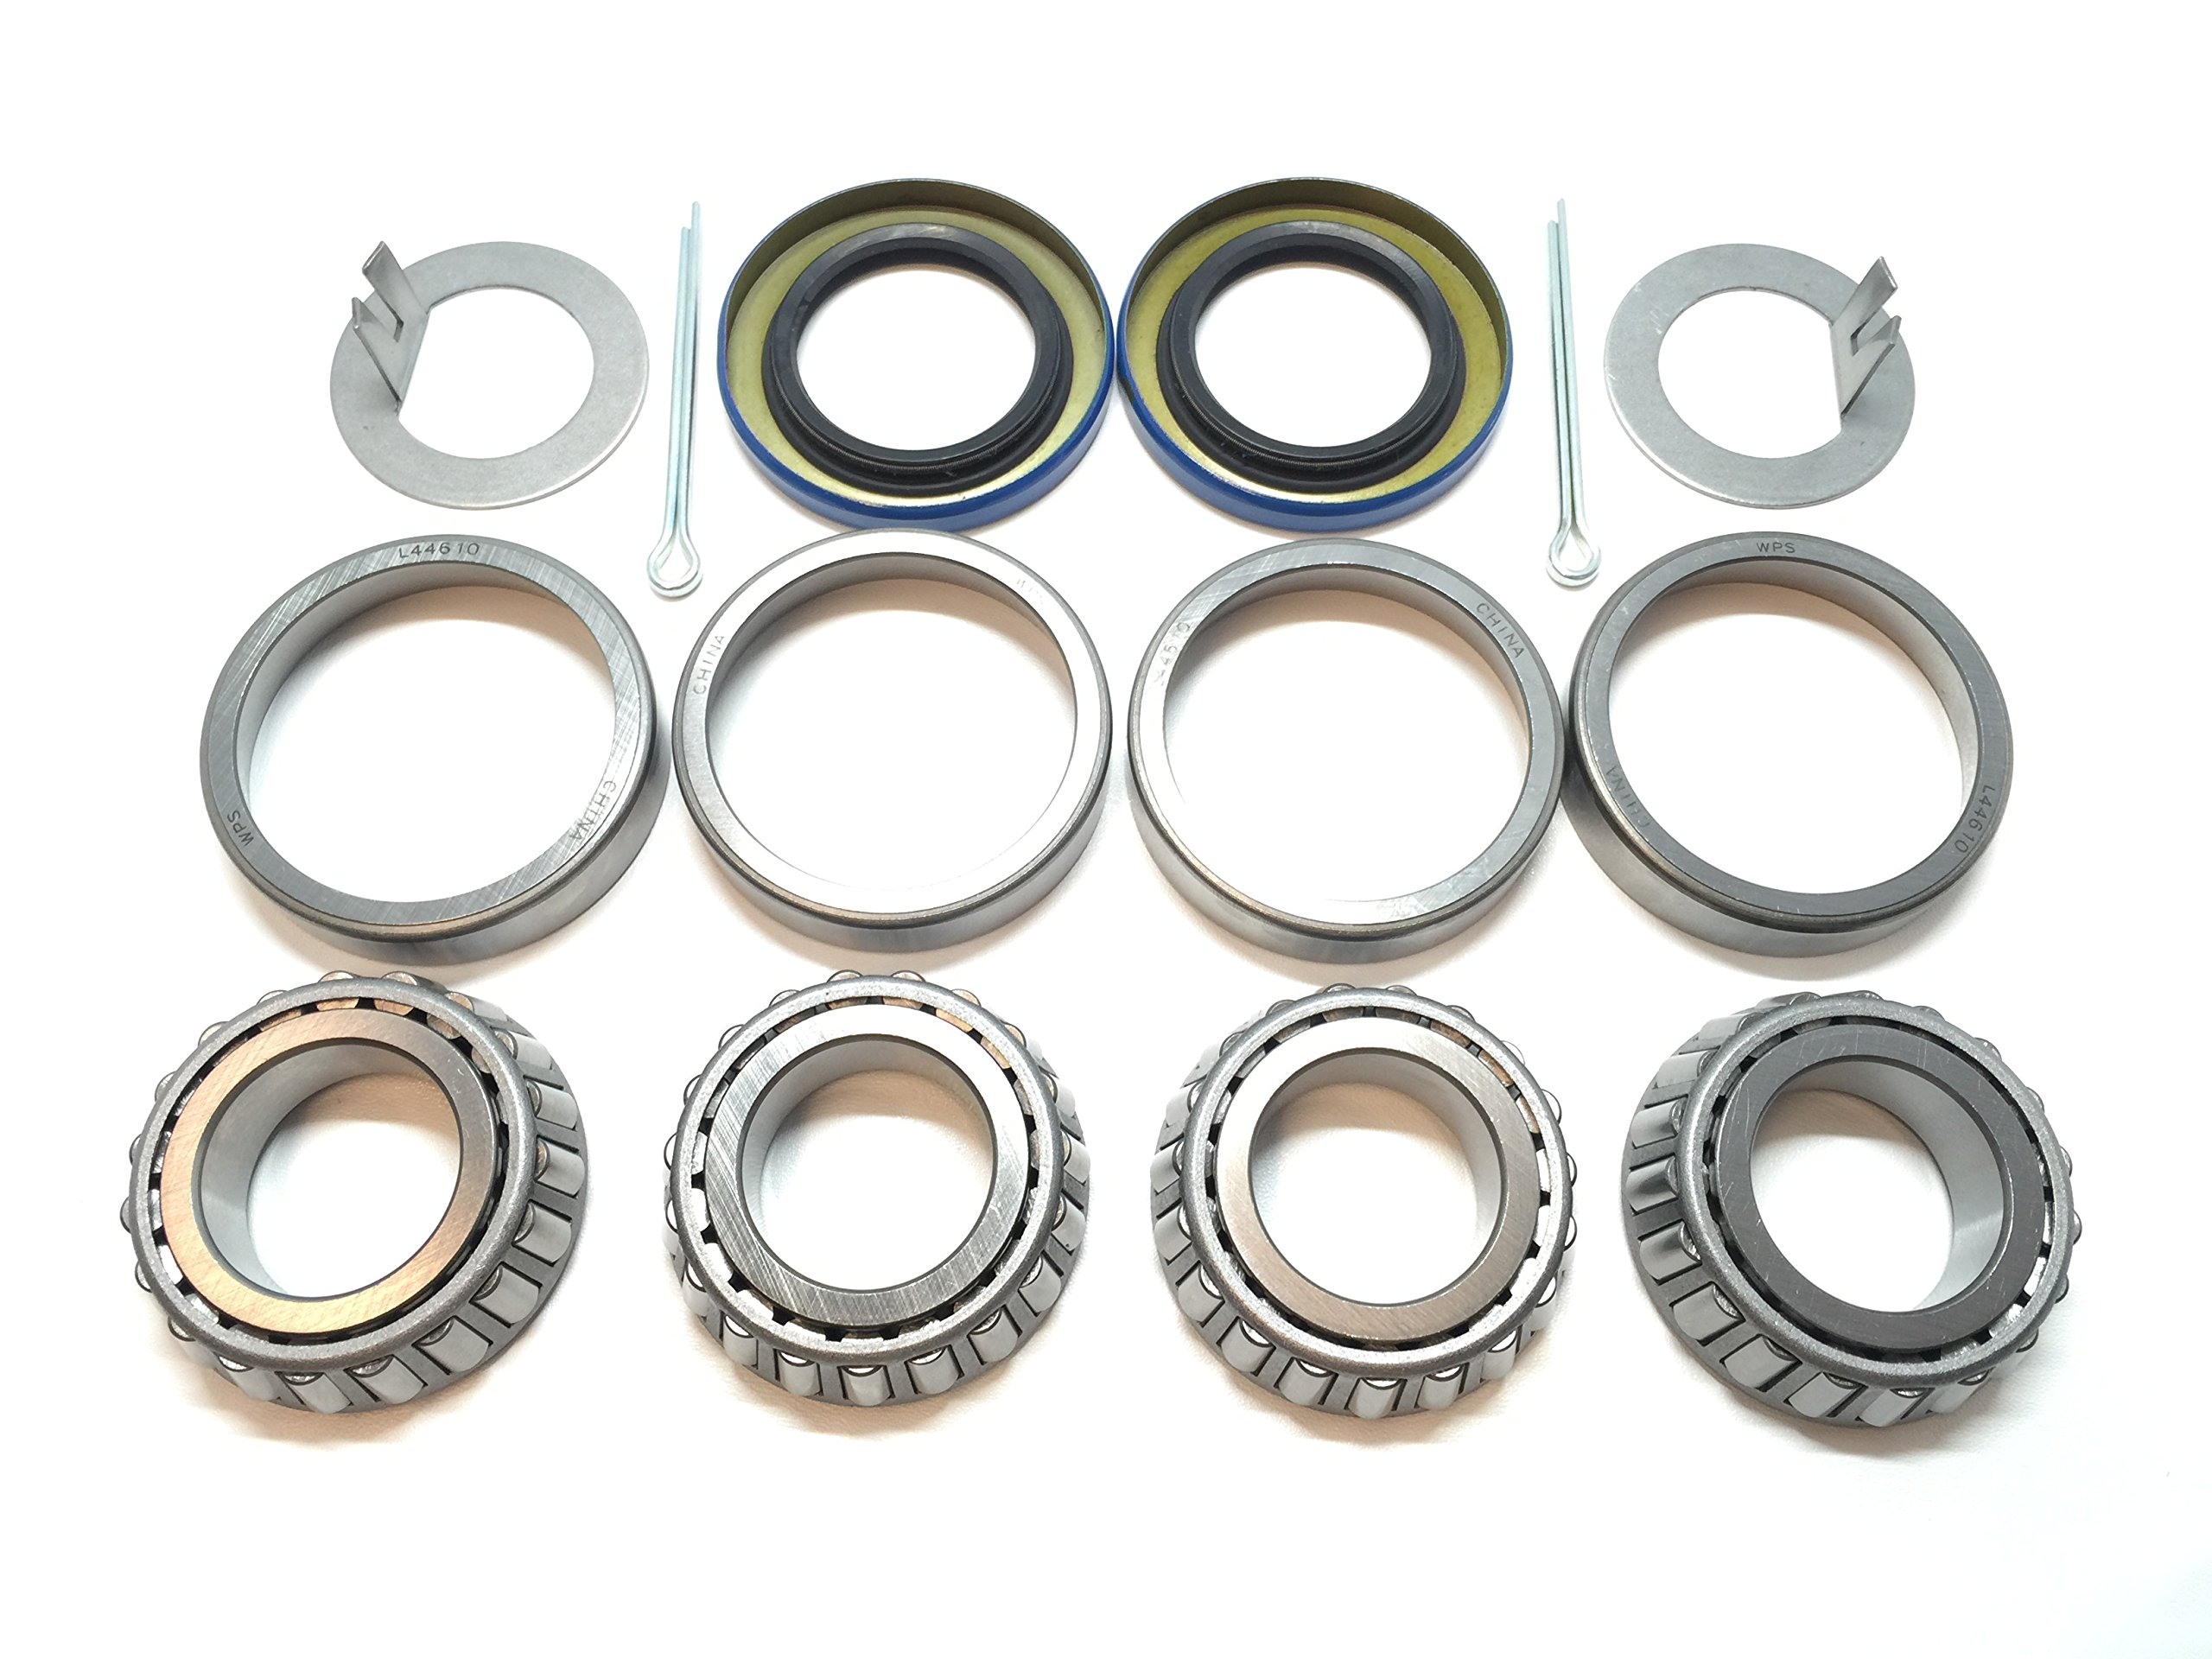 (Set of 2) WPS Trailer Axle Hub Wheel Bearing Kits L44643 L44610 Spindle 1.000'' (1-Inch) Grease Seal 12192TB I.D. 1.249'' for 2000# EZ Lube Axles